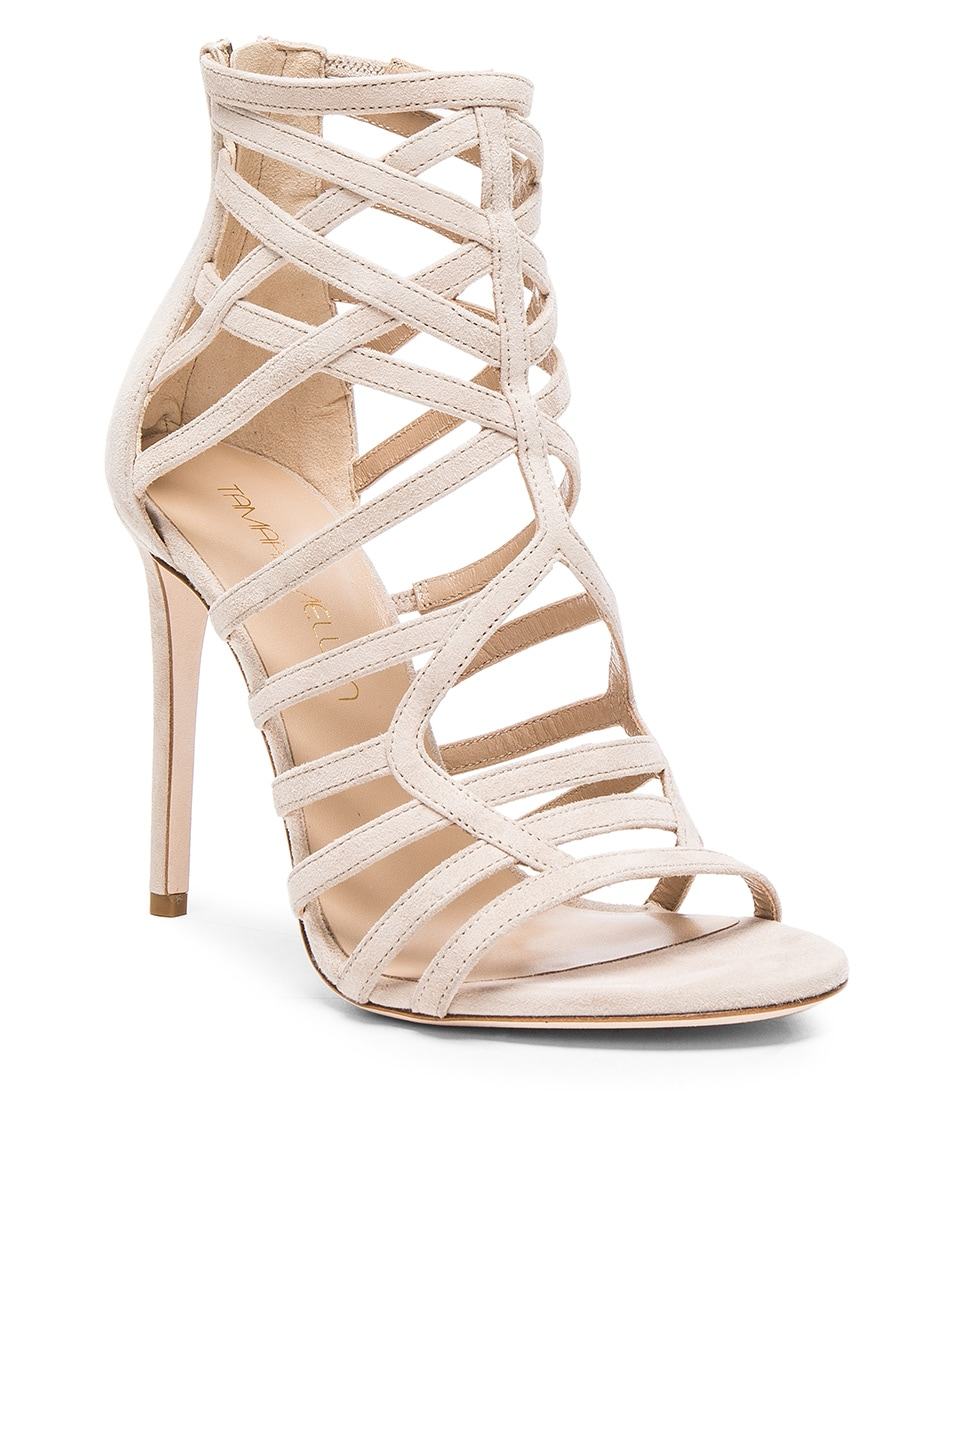 Image 2 of Tamara Mellon Goddess Nappa & Suede Sandals in Nude